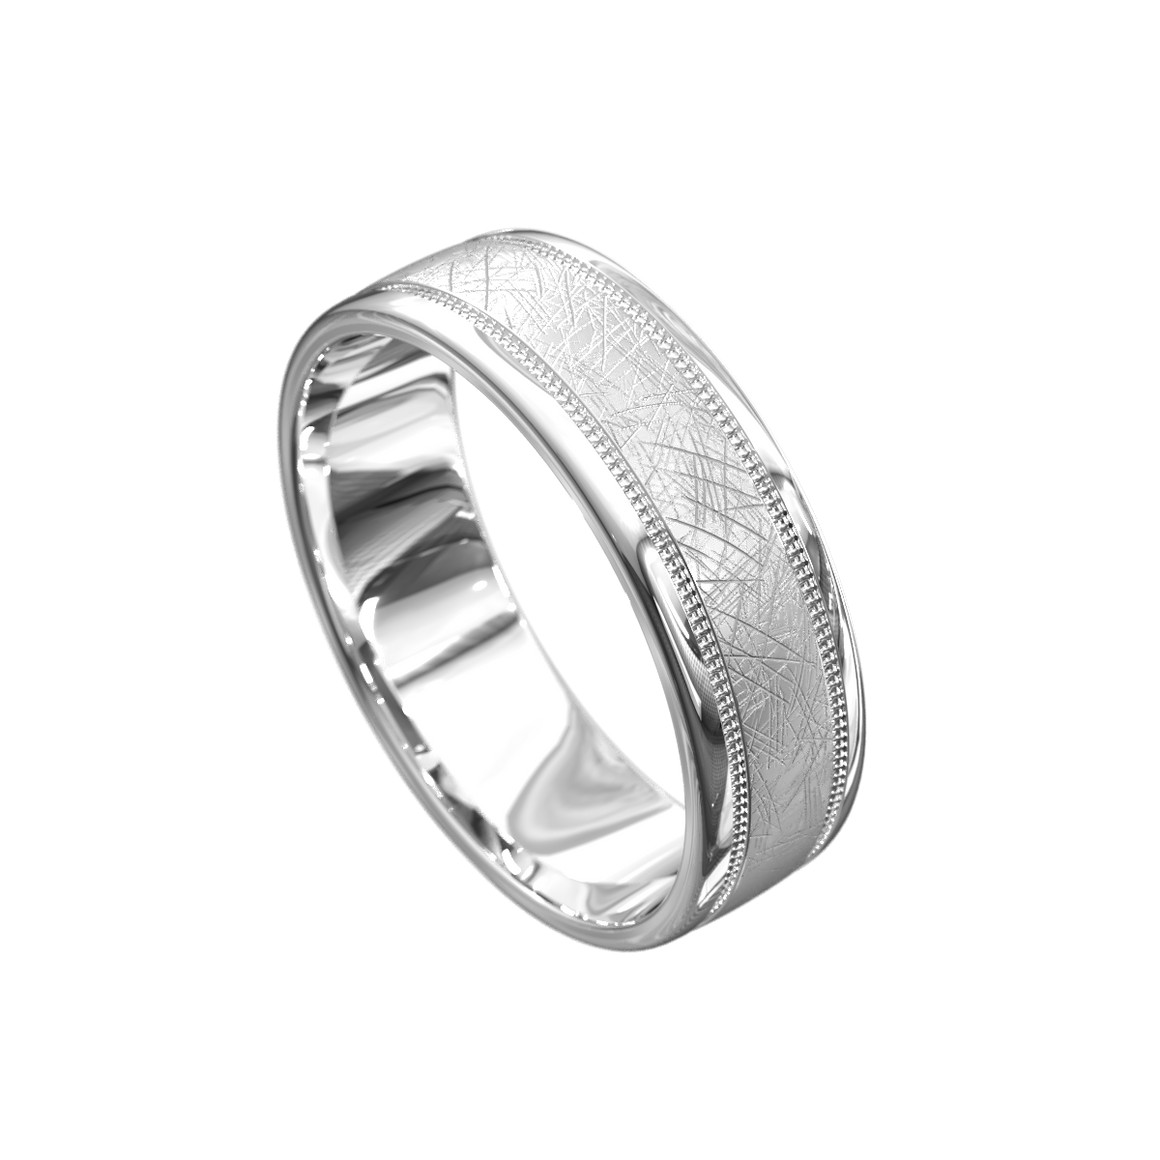 The 'Eugenios' Mens Wedding Ring